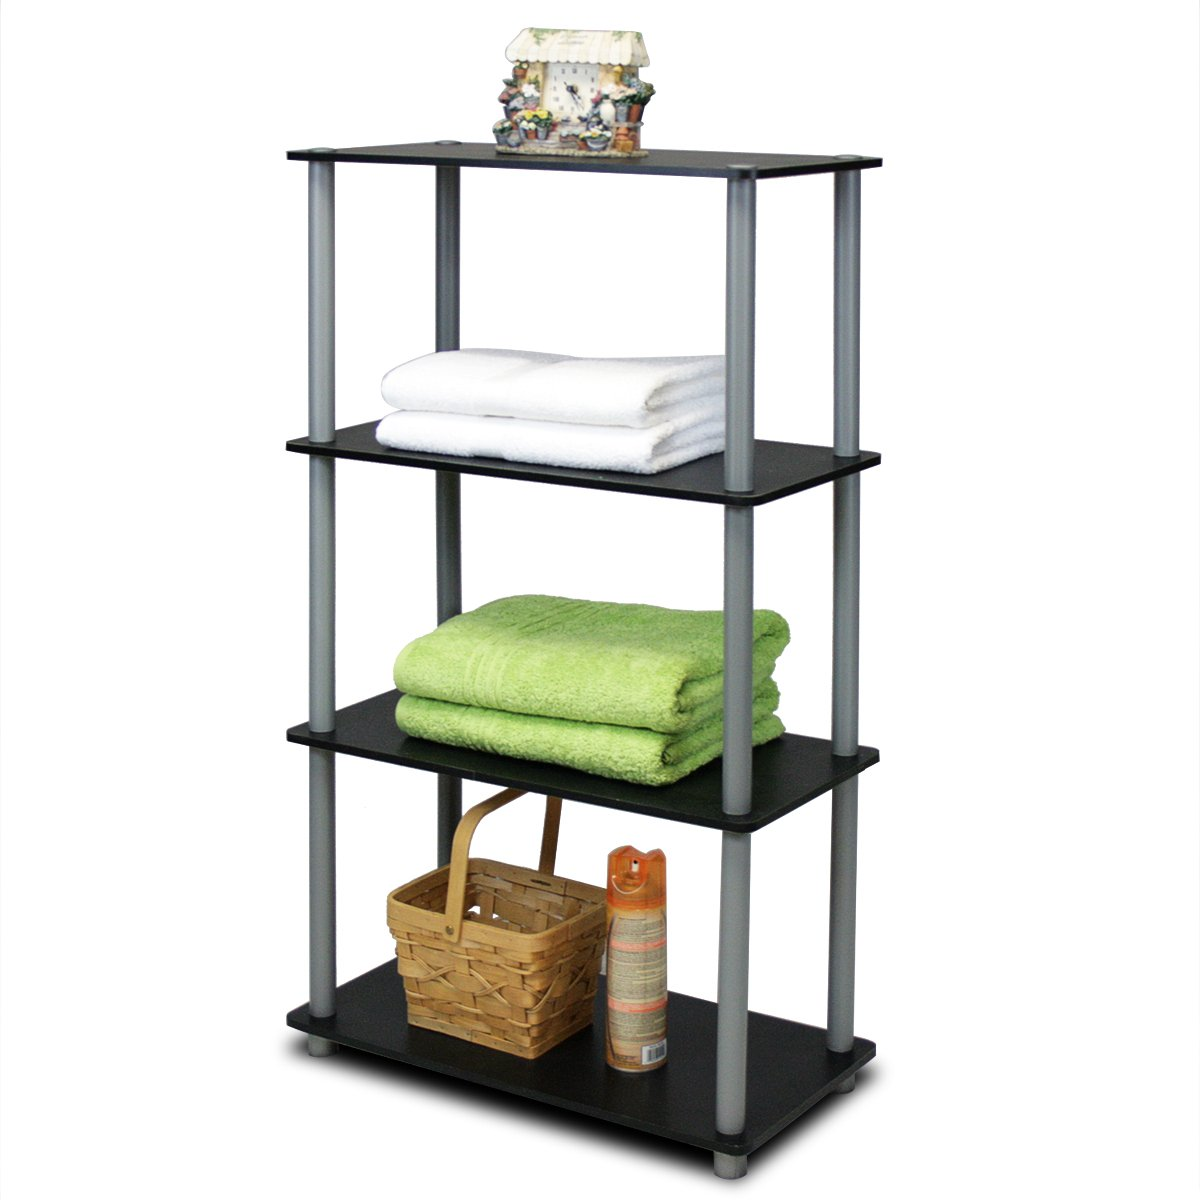 $29.58 (was $69.99) Furinno 99557BK/GY Turn-N-Tube 4-Tier Multipurpose Shelf Display Rack, Black/Grey